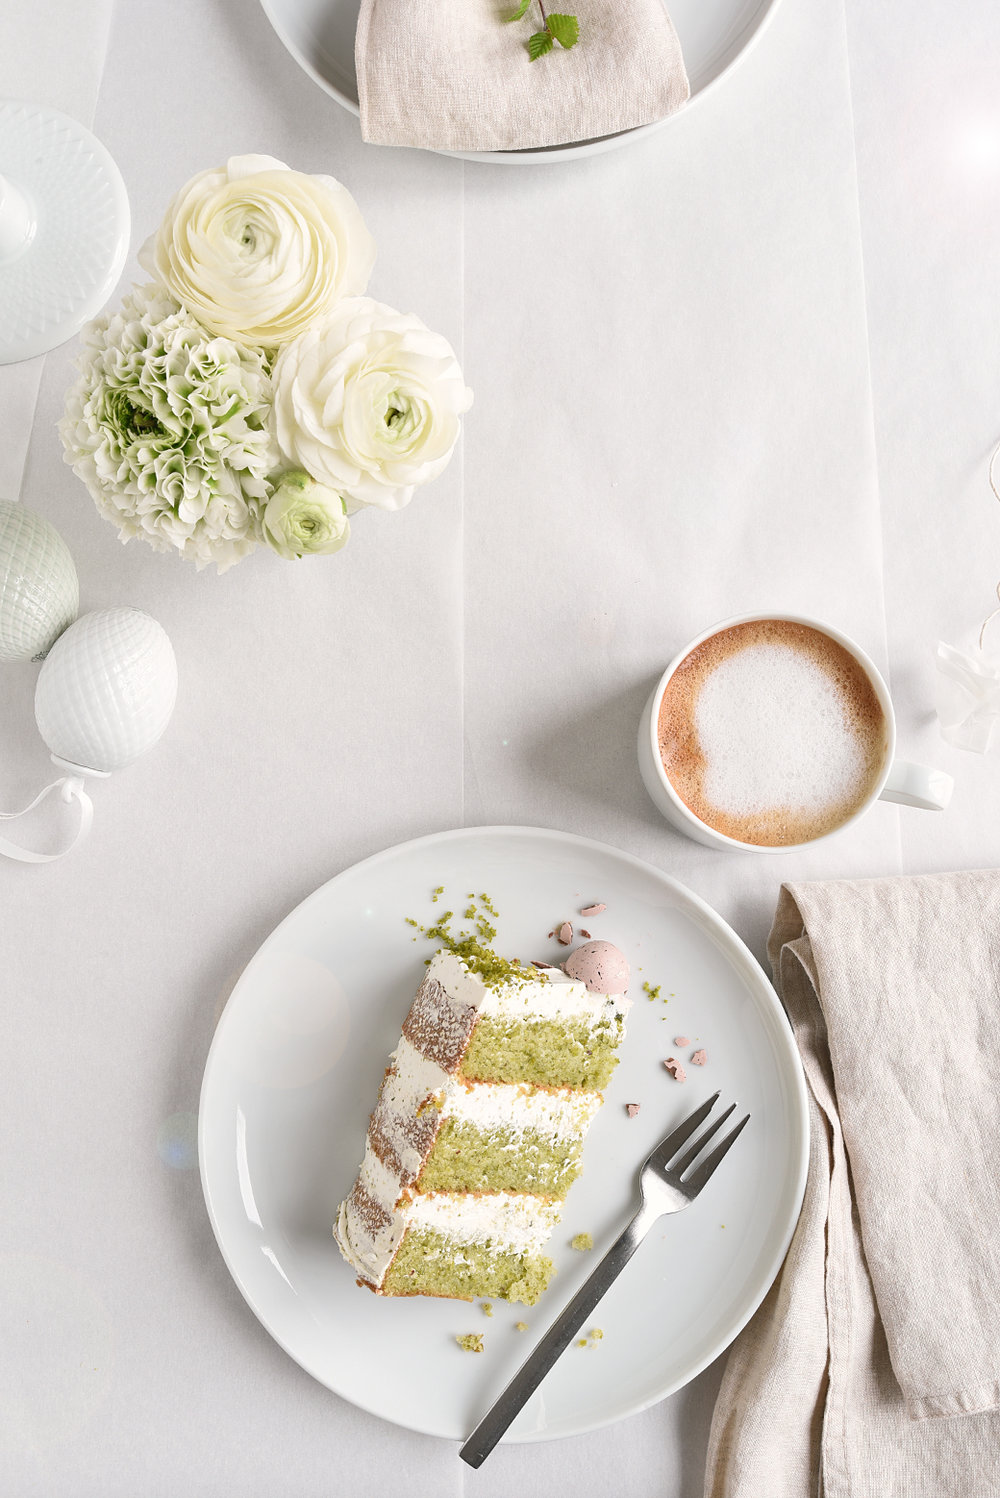 Delicious Easter Cake + Easter Tabletop Decorations